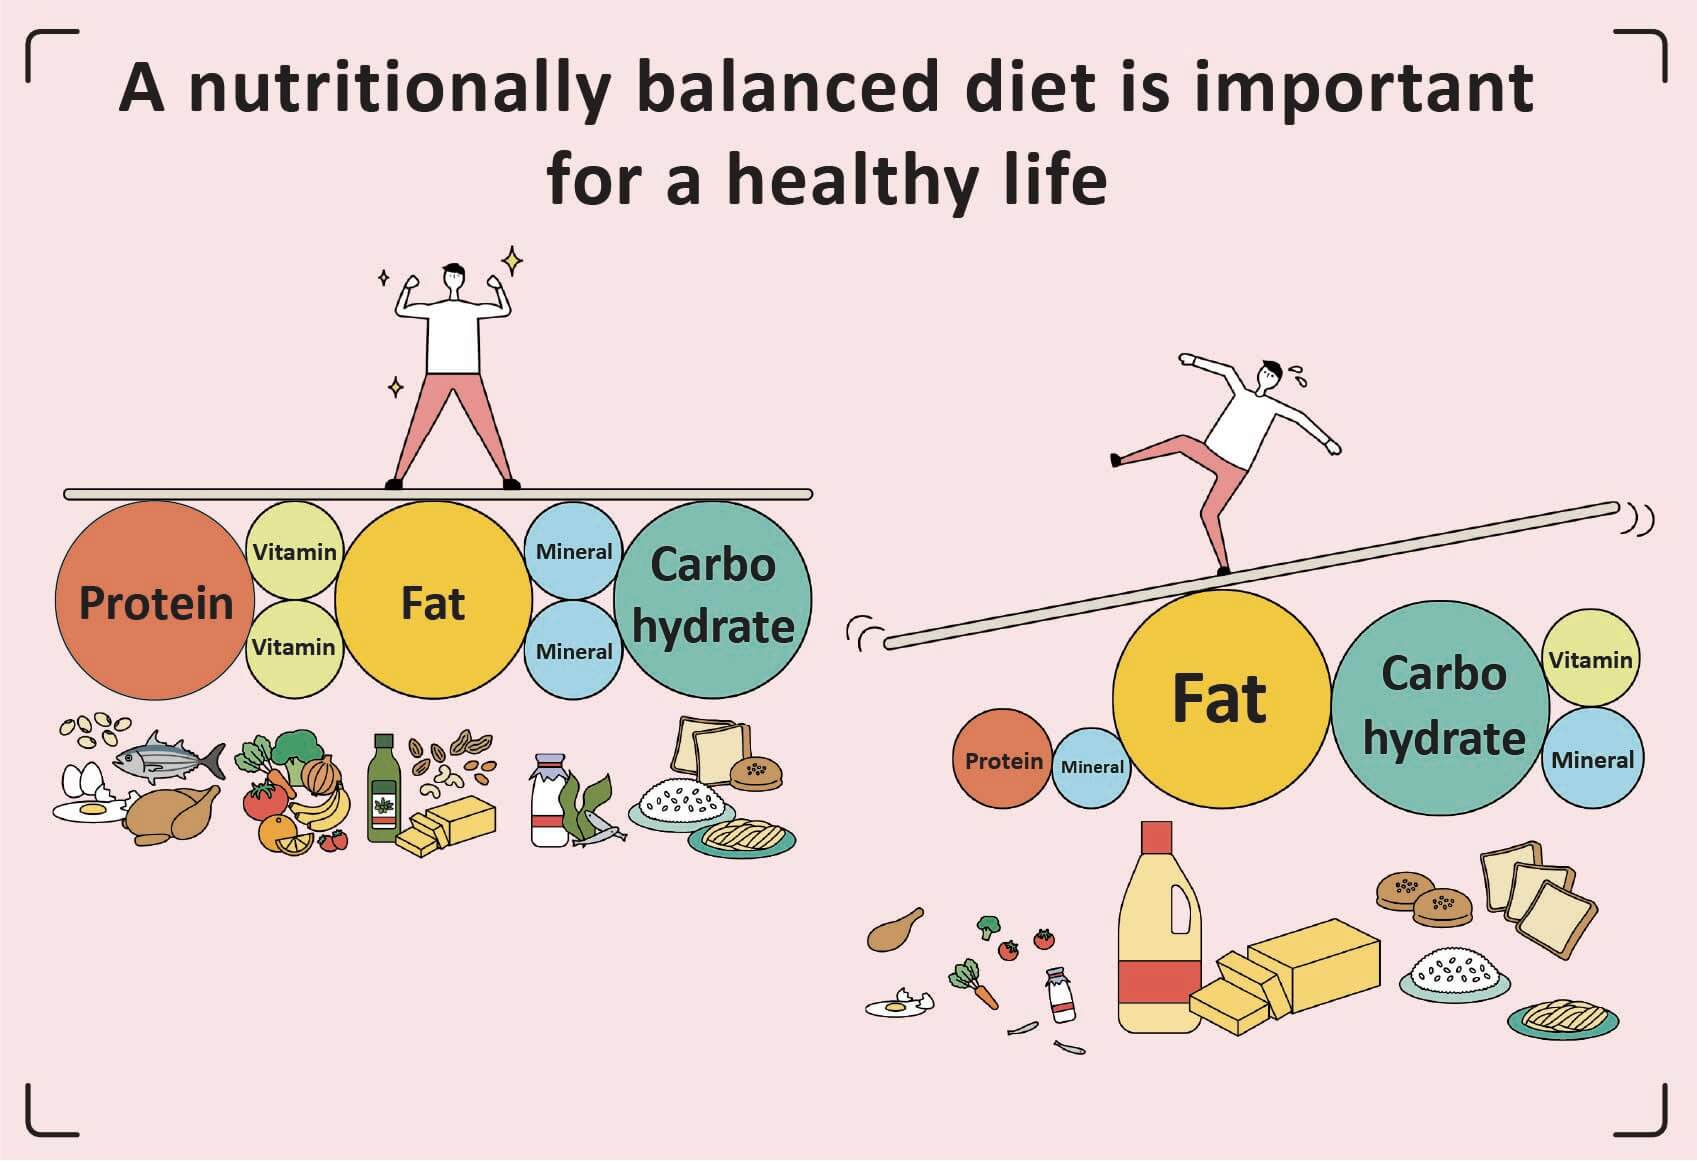 Nutritionally Balanced Diet For Healthy life